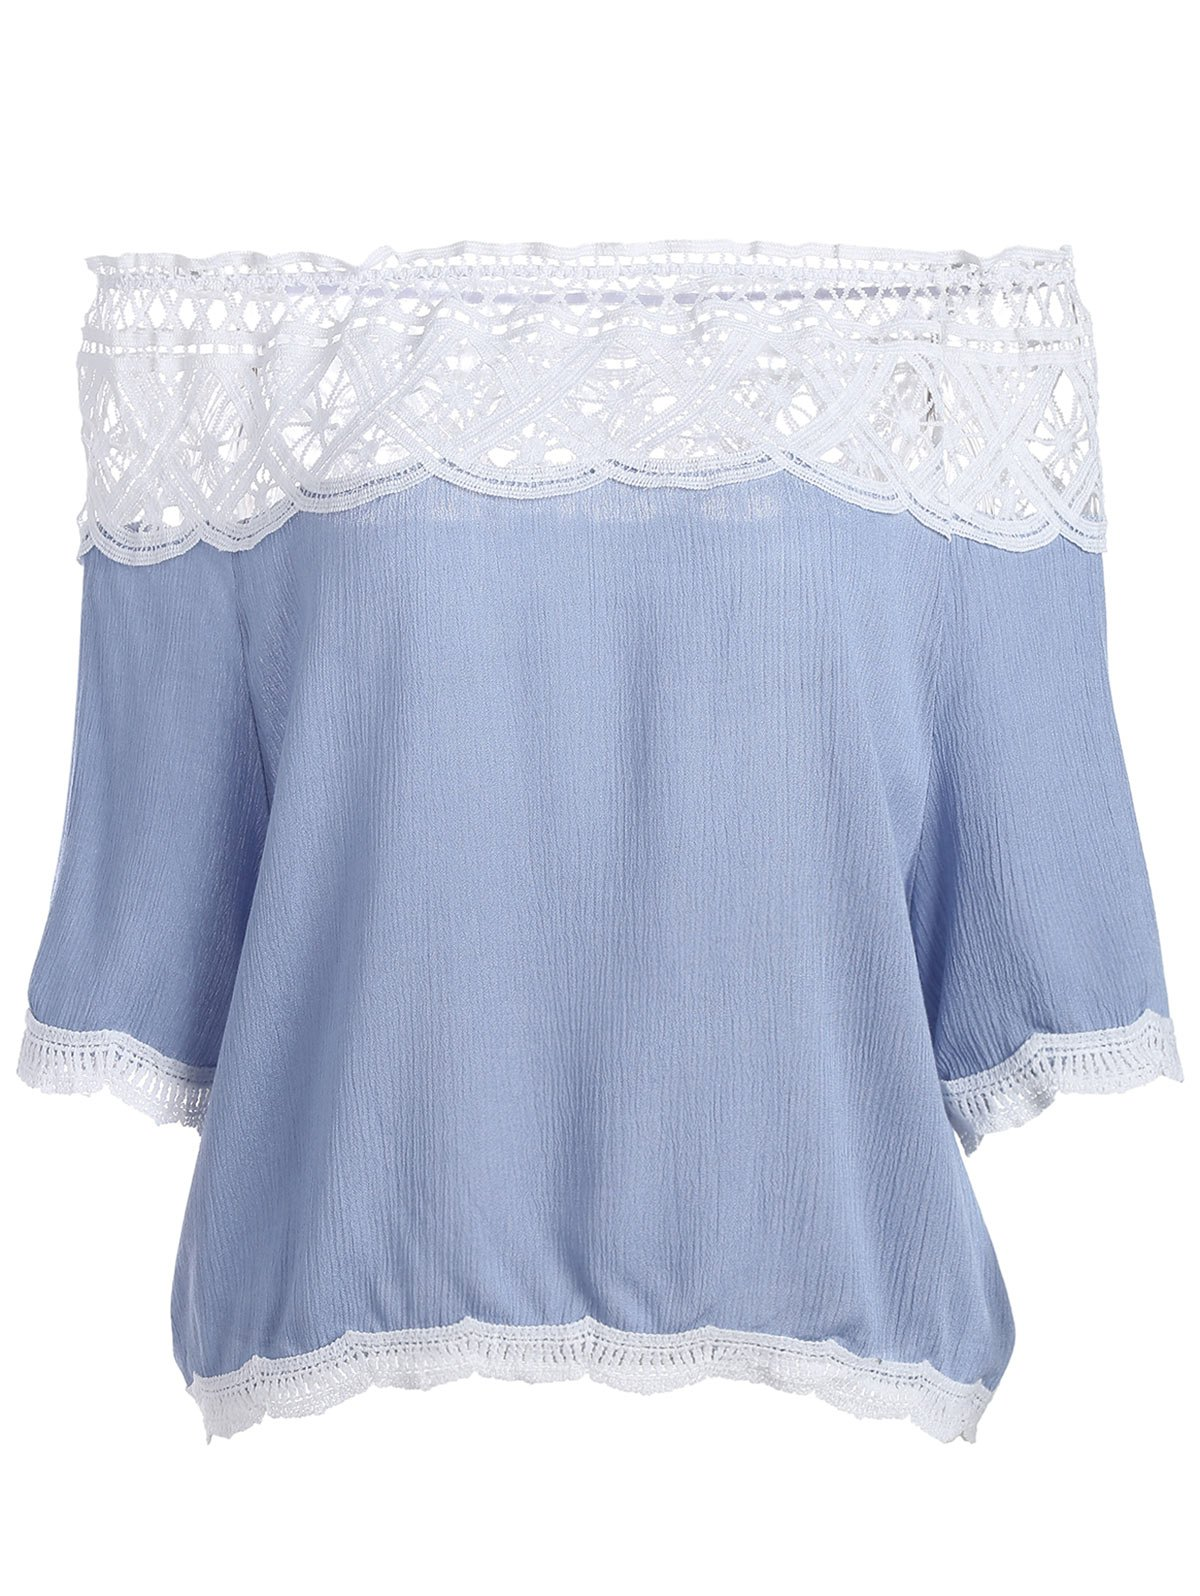 Unique Off The Shoulder Lace Trim Chiffon Blouse